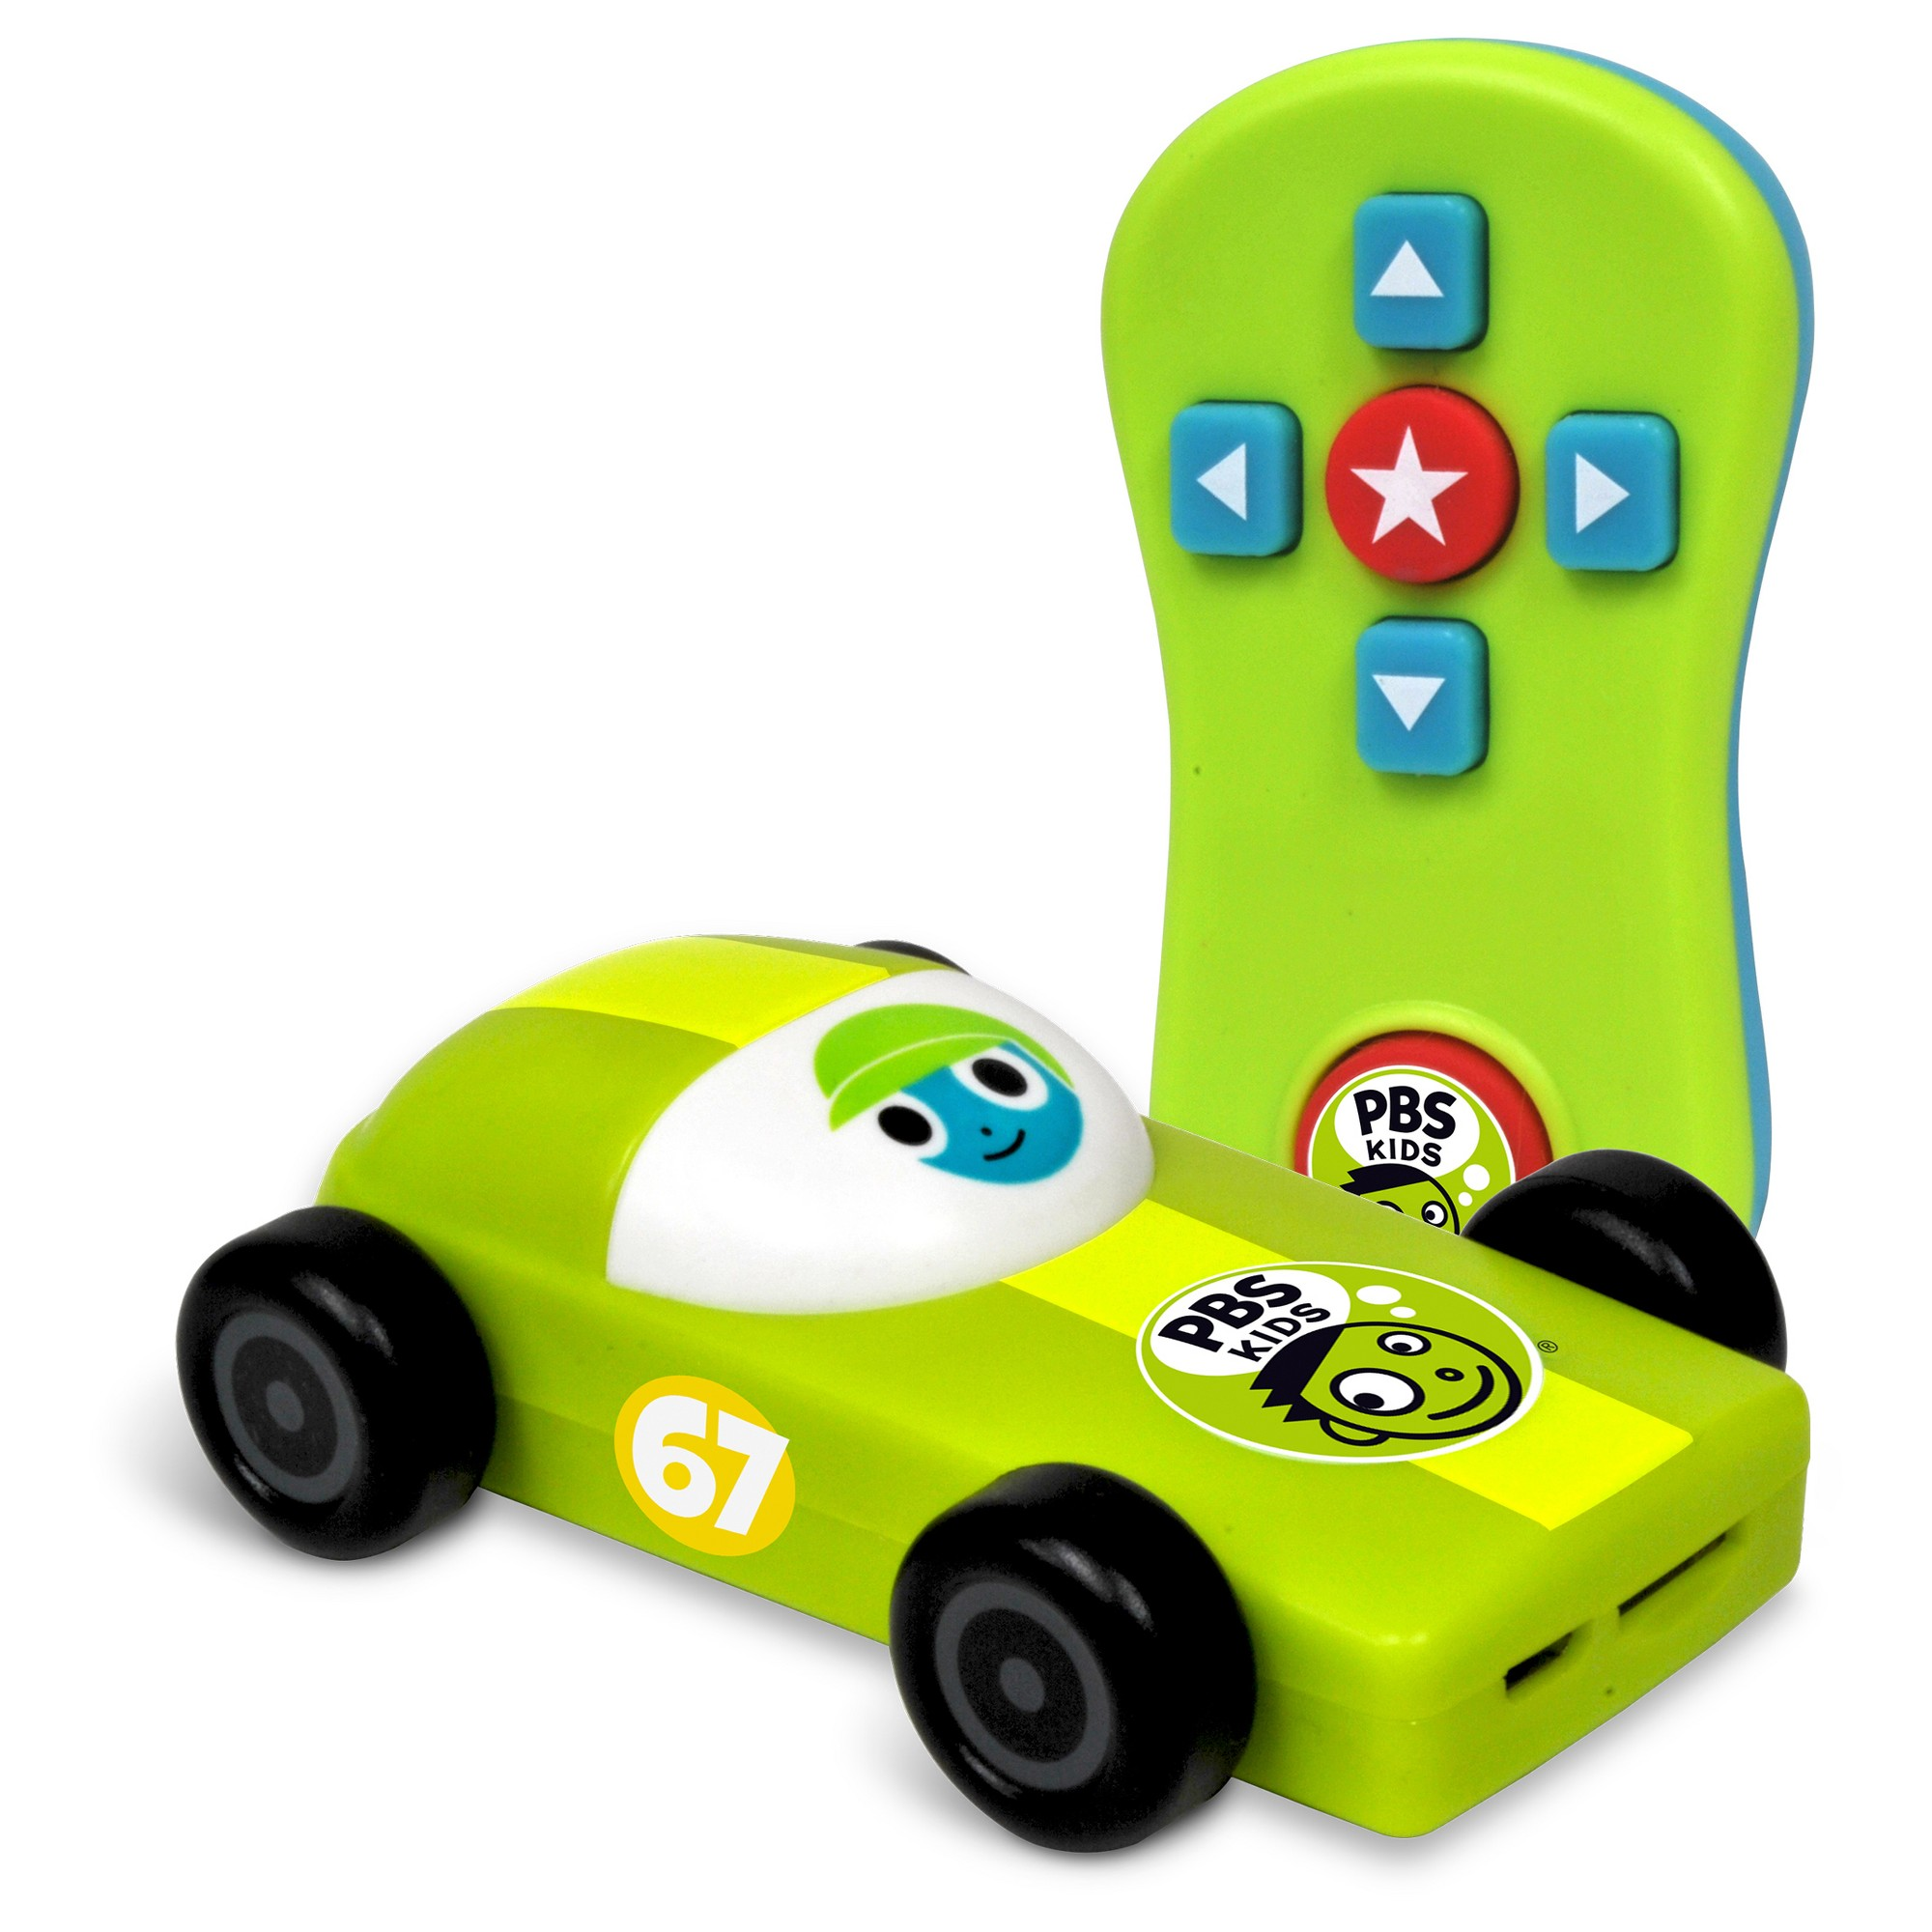 PBS Kids TV Streaming Player Green, Adult Unisex Pbs